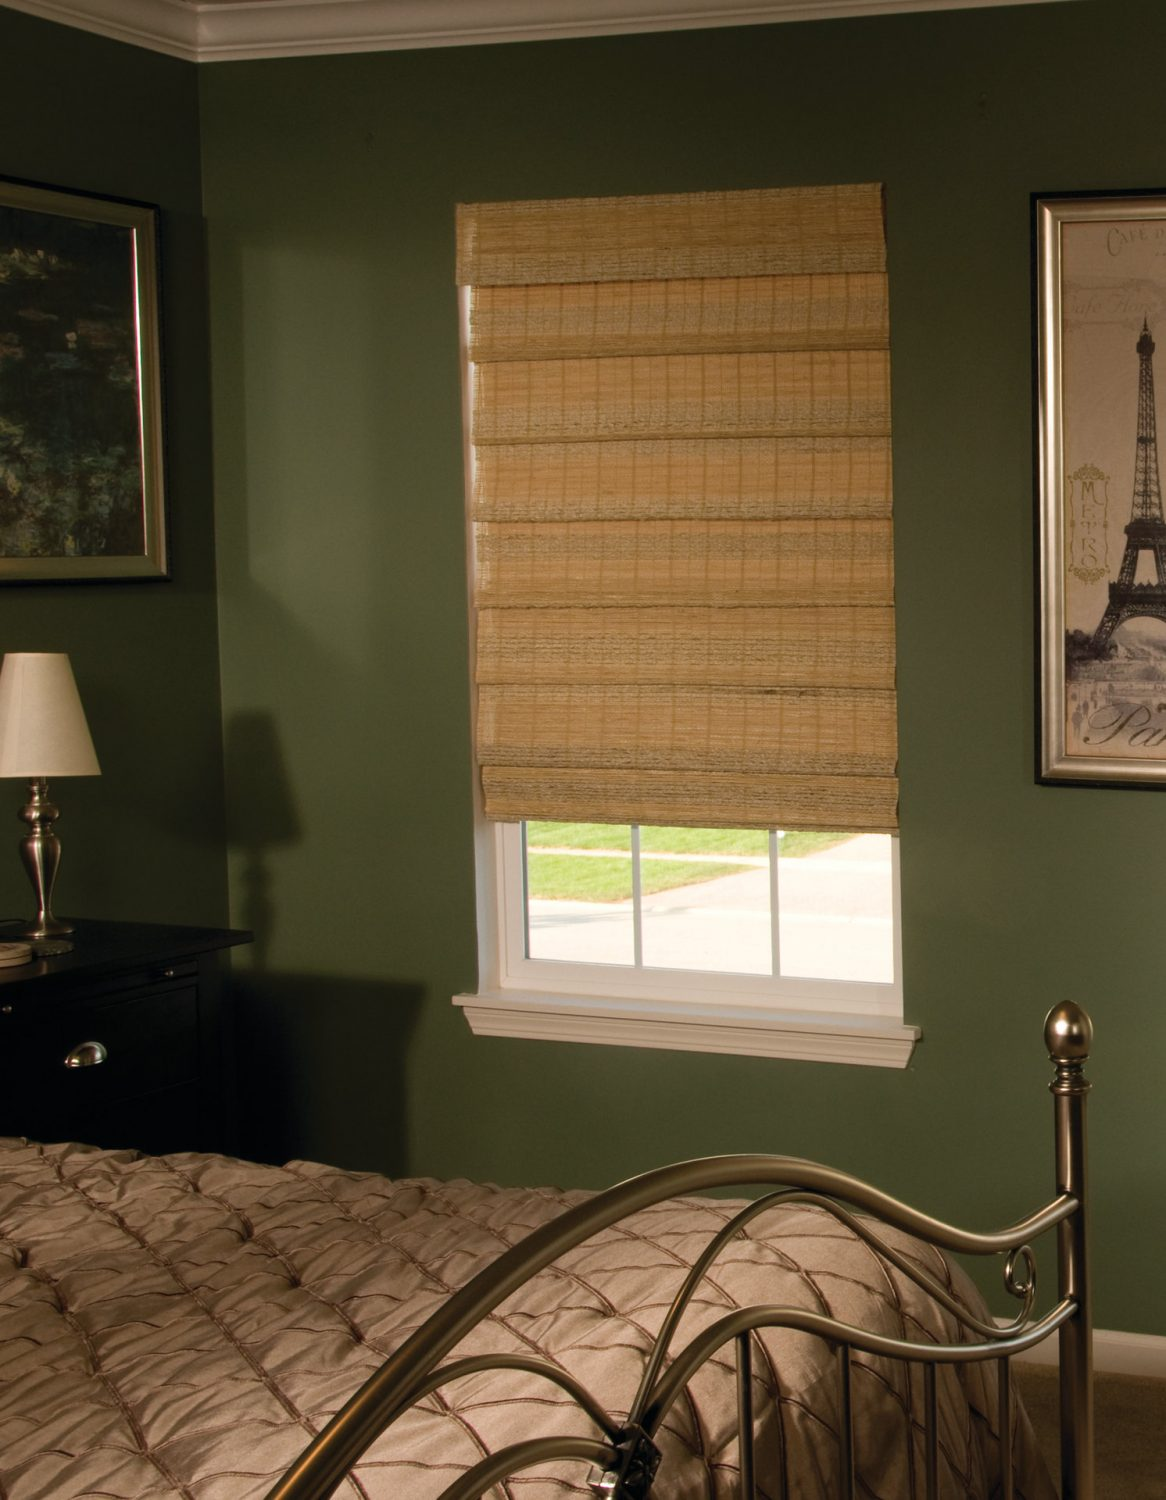 Where To Buy Roman Shades Buy Fabric And Bamboo Roman Shades Locally Blinds N More